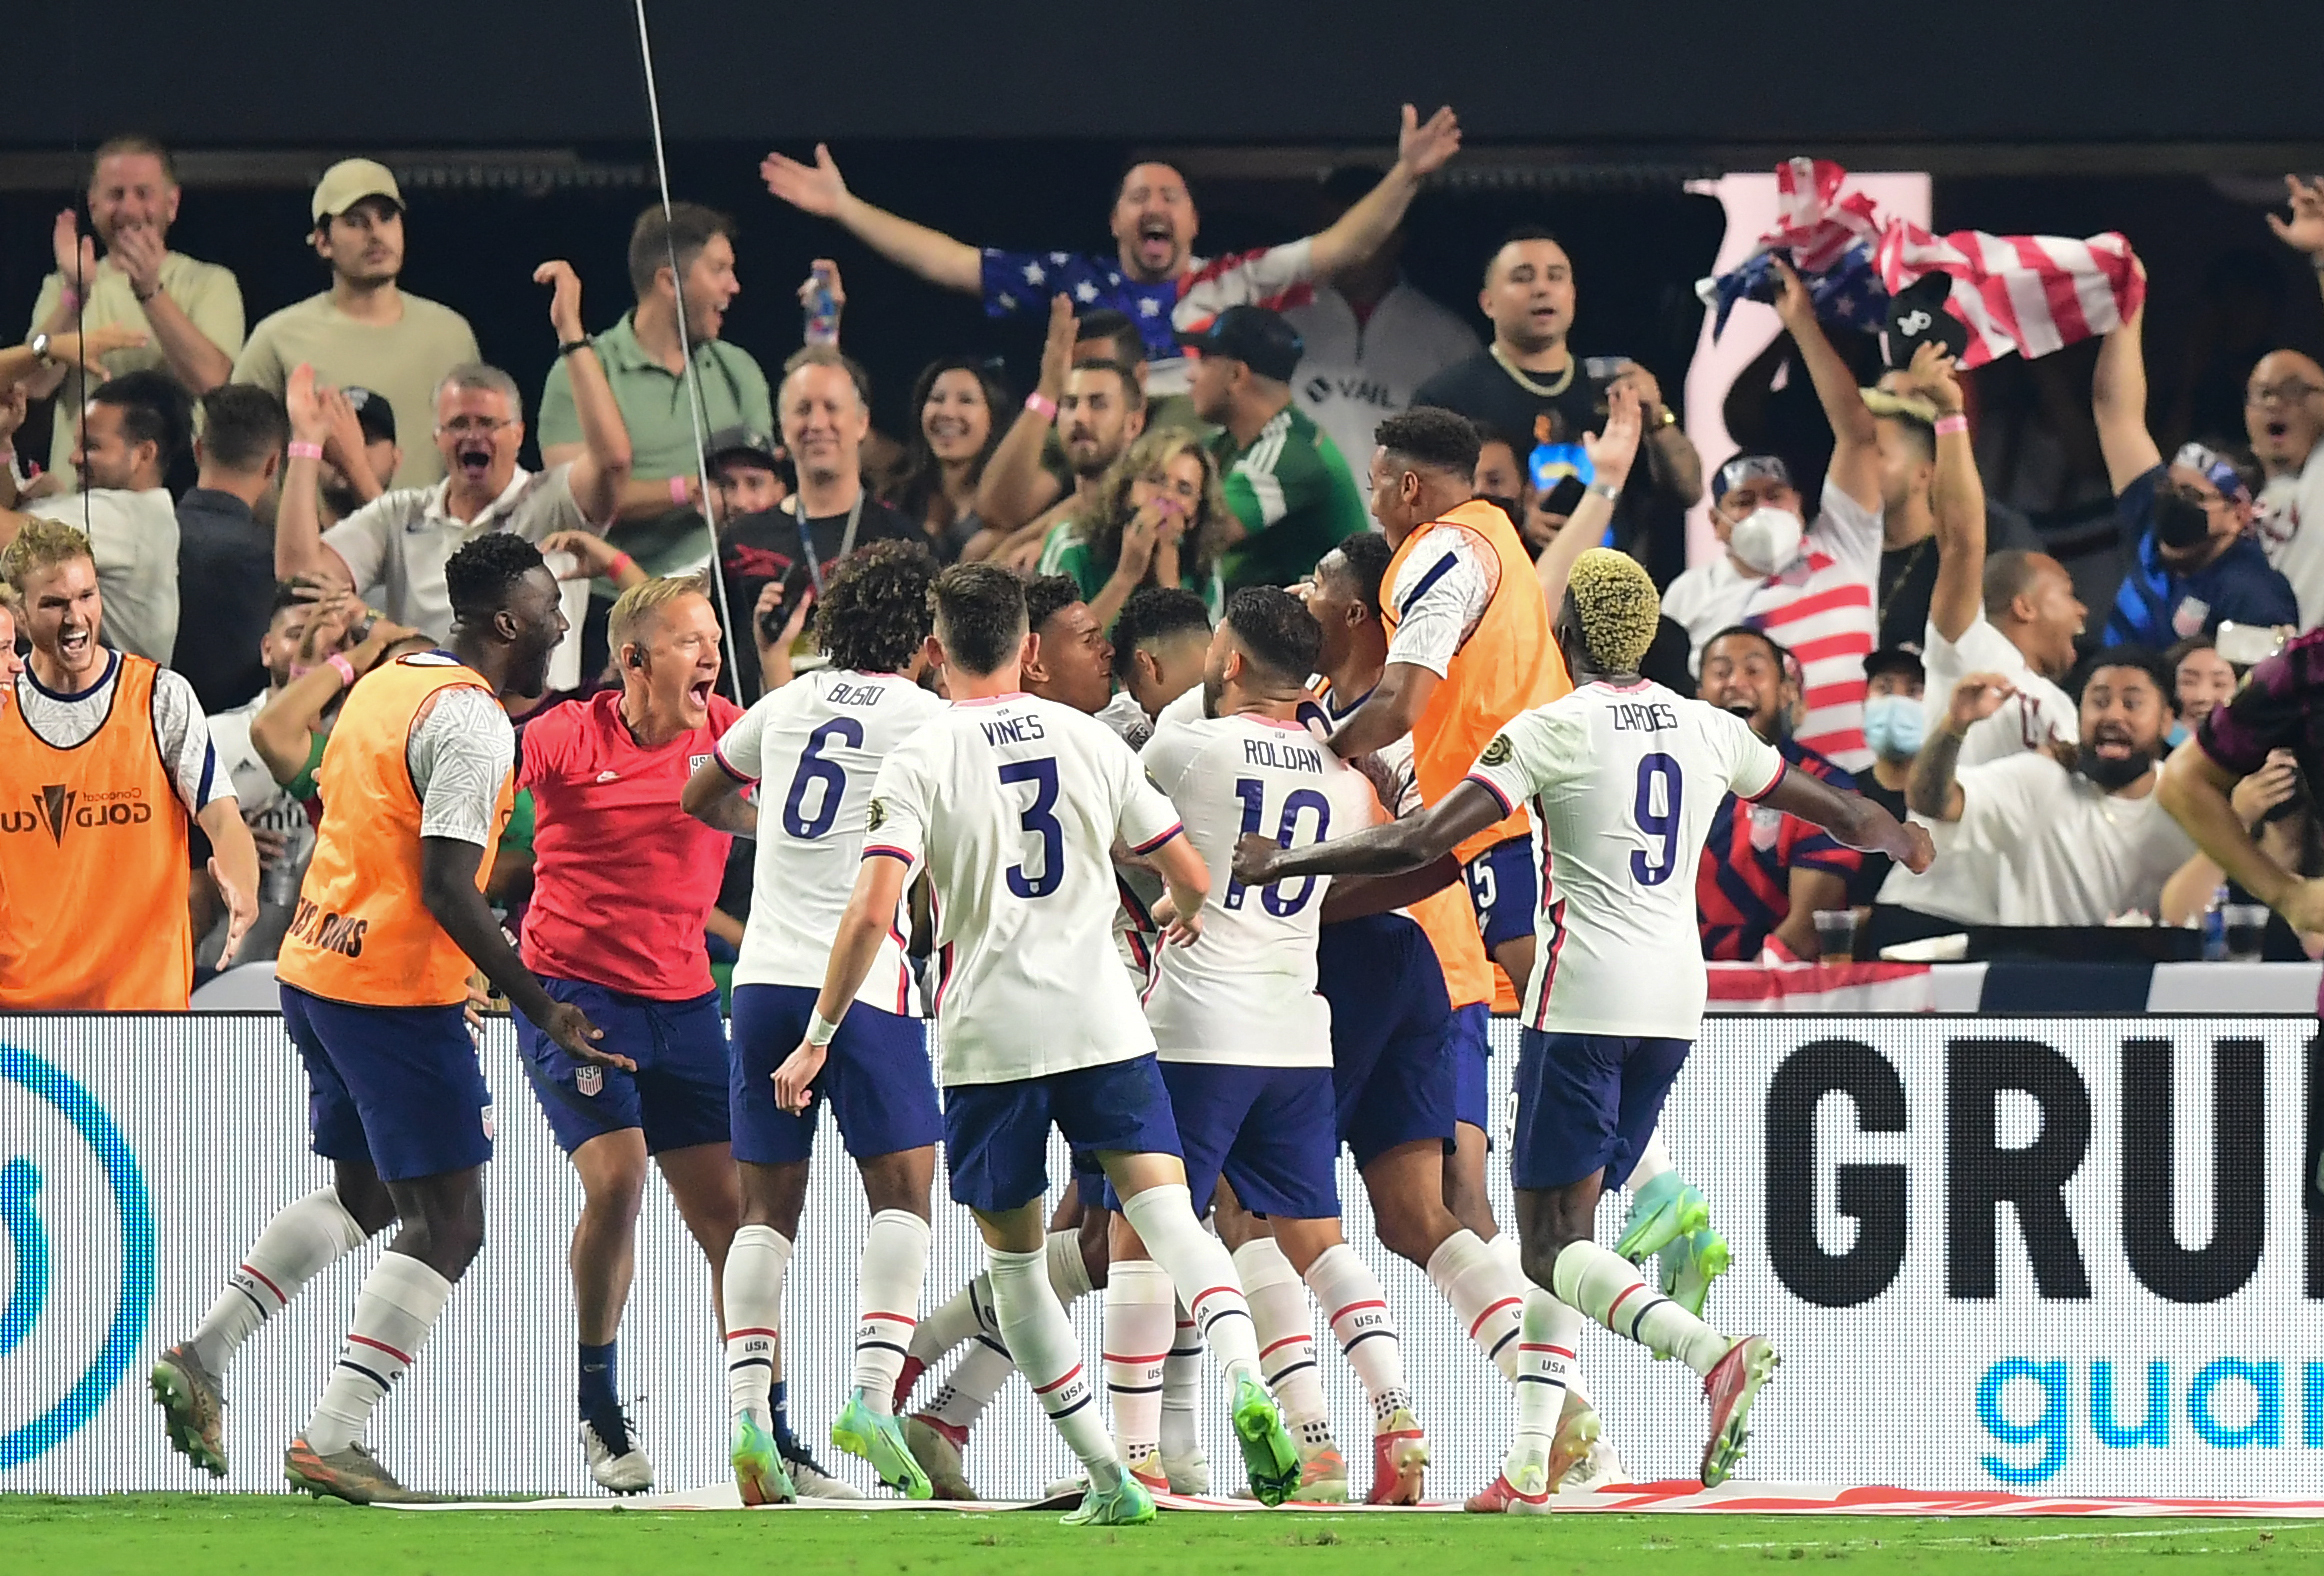 Which one of them do you think you would be? Former Syracuse Soccer Player Miles Robinson Nets Extra Time Goal To Lift Usa Over Mexico In Gold Cup Syracuse Com